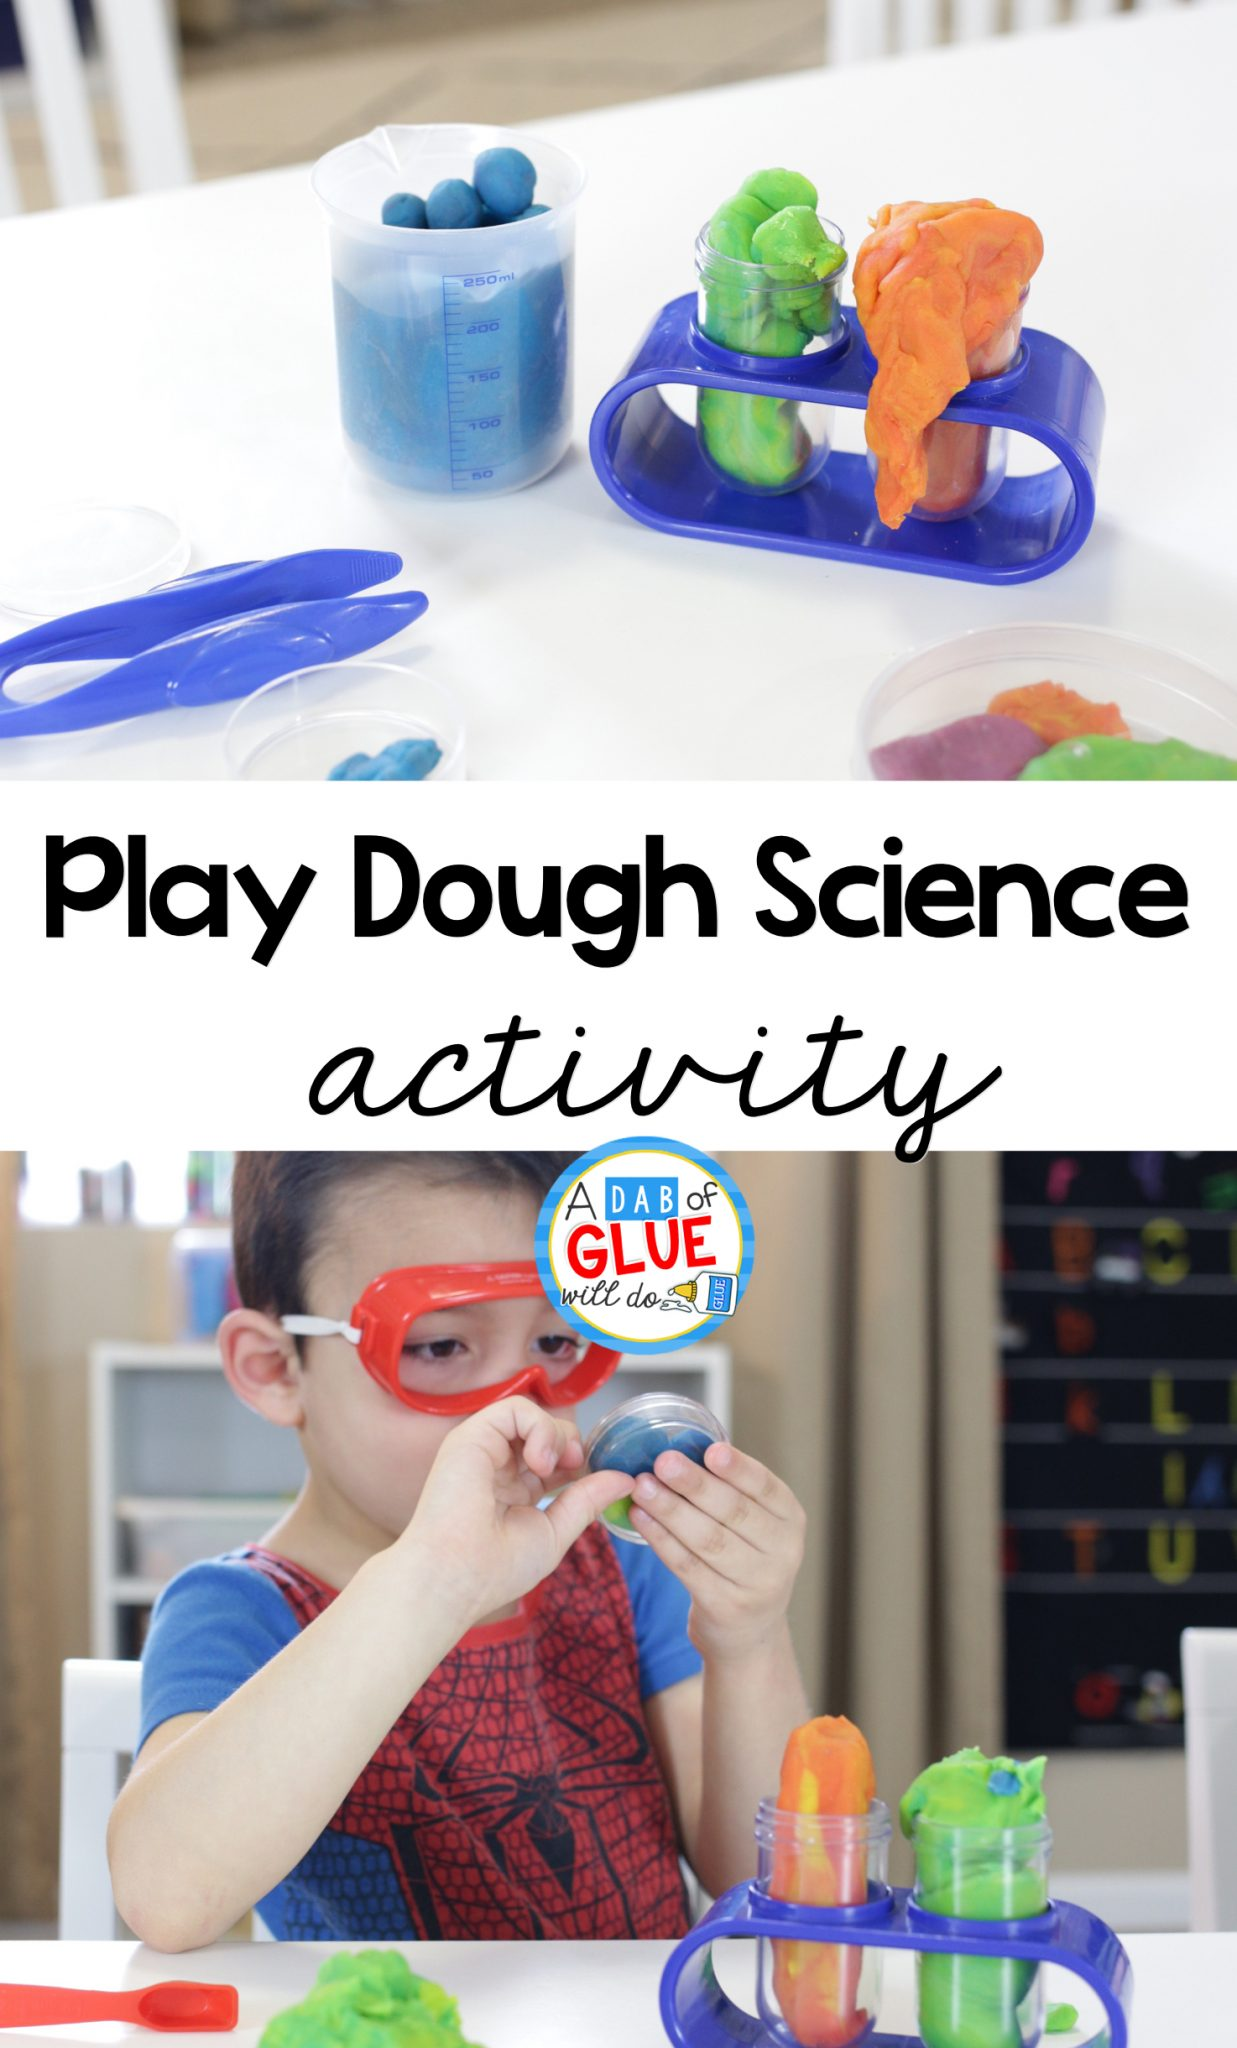 Play dough activities are practically written into our preschool curriculum. We love to stamp letters into play dough, create interesting new animals, squeeze it through play dough extruders, and even give it as gifts! This play dough science activity is one part dramatic play, one part science, and a whole lot of fun!